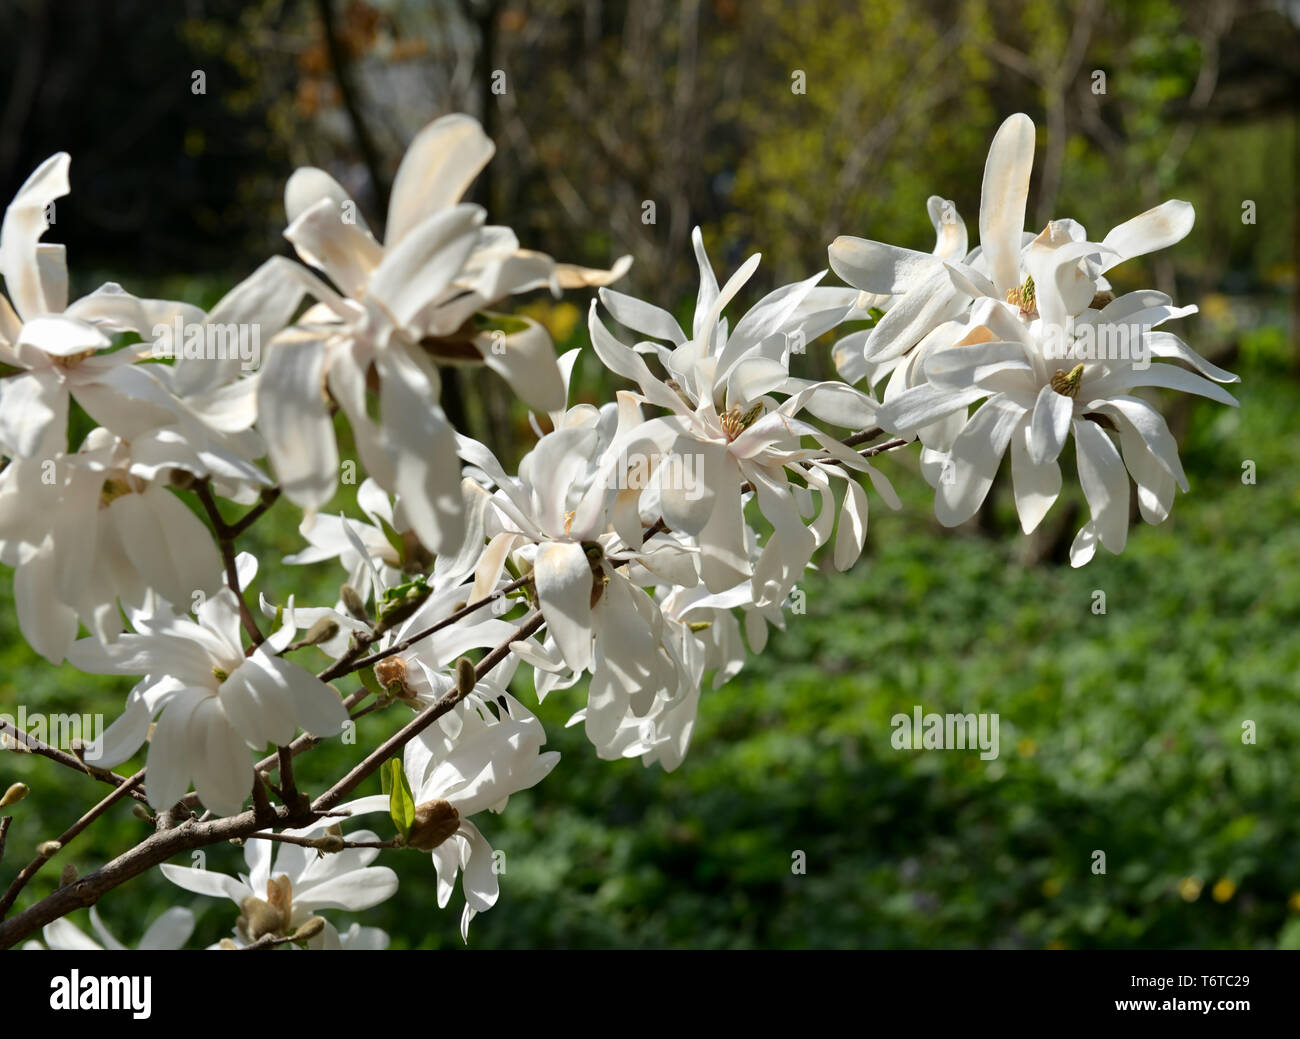 Magnolia kobus, known as mokryeon, kobus magnolia, or kobushi magnolia, species of Magnolia native to Japan and occasionally cultivated in temperate a - Stock Image